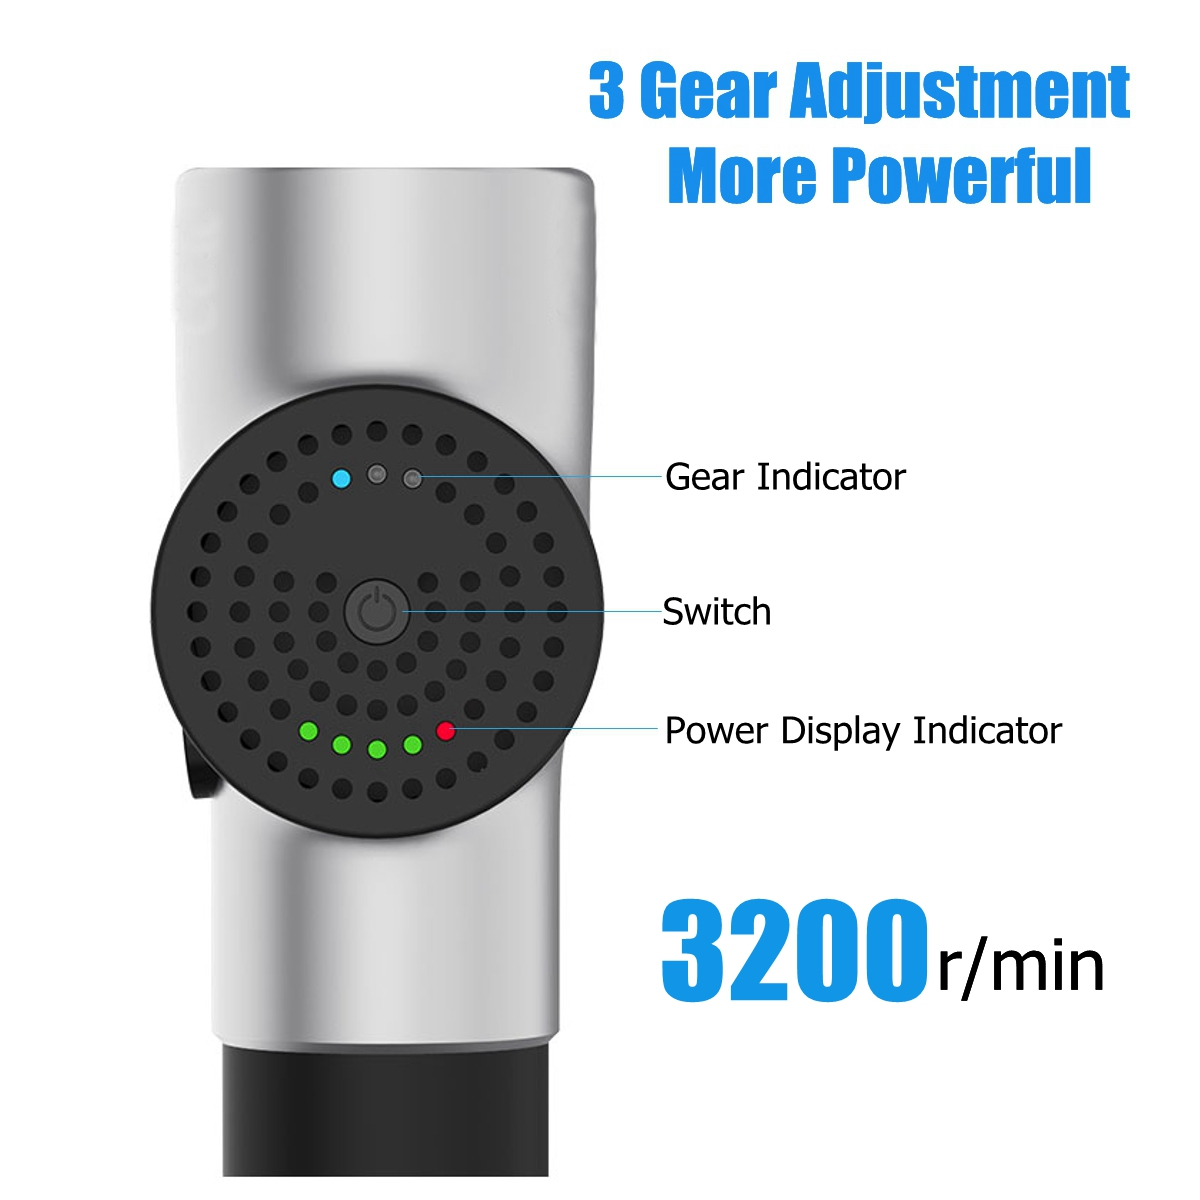 3 Speed Deep Tissue Muscle Massager Relaxation Vibration Electric Massager Cordless Percussion Massage G un Rechargeable Handheld Stimulation With 4 Head